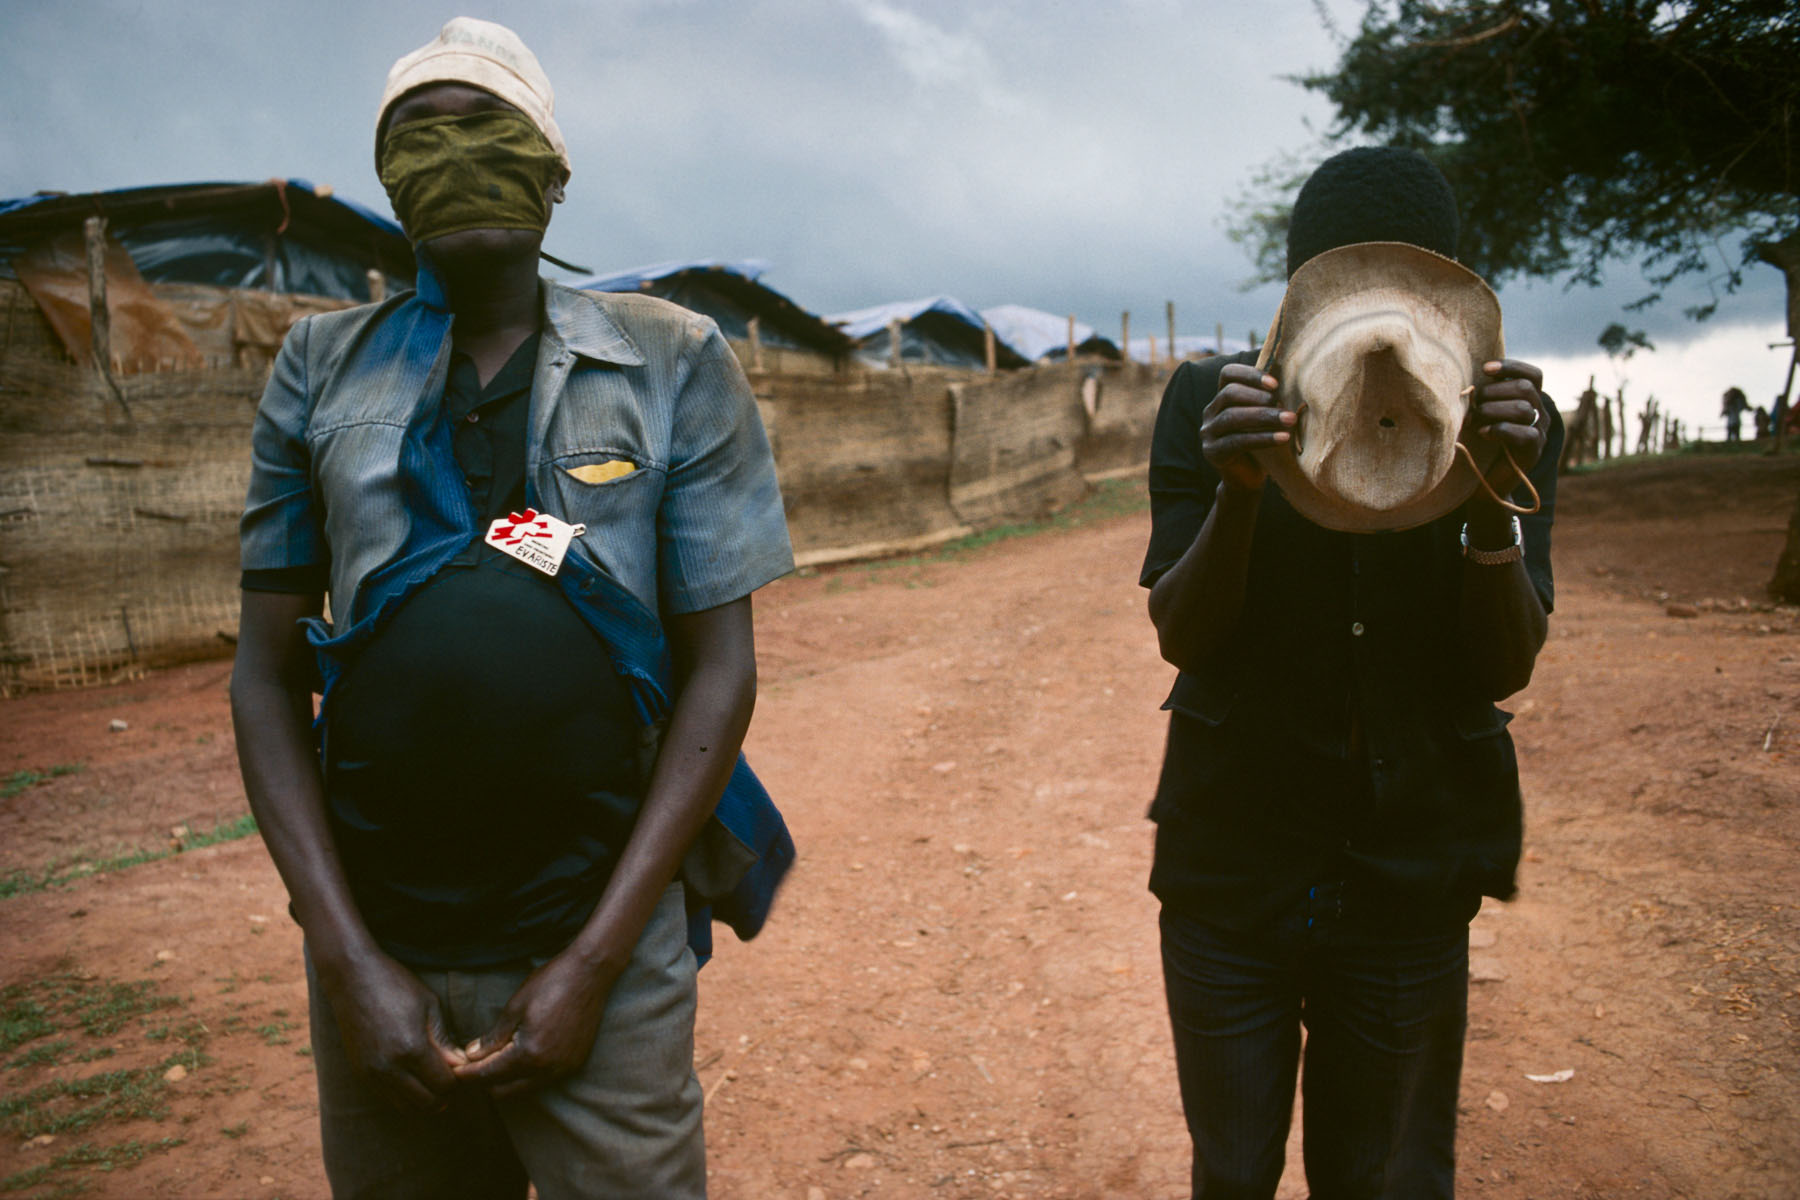 «Doctors Without Borders» employees during a storm in the Burundese Hutu refugee camp of Kanage in February 1994